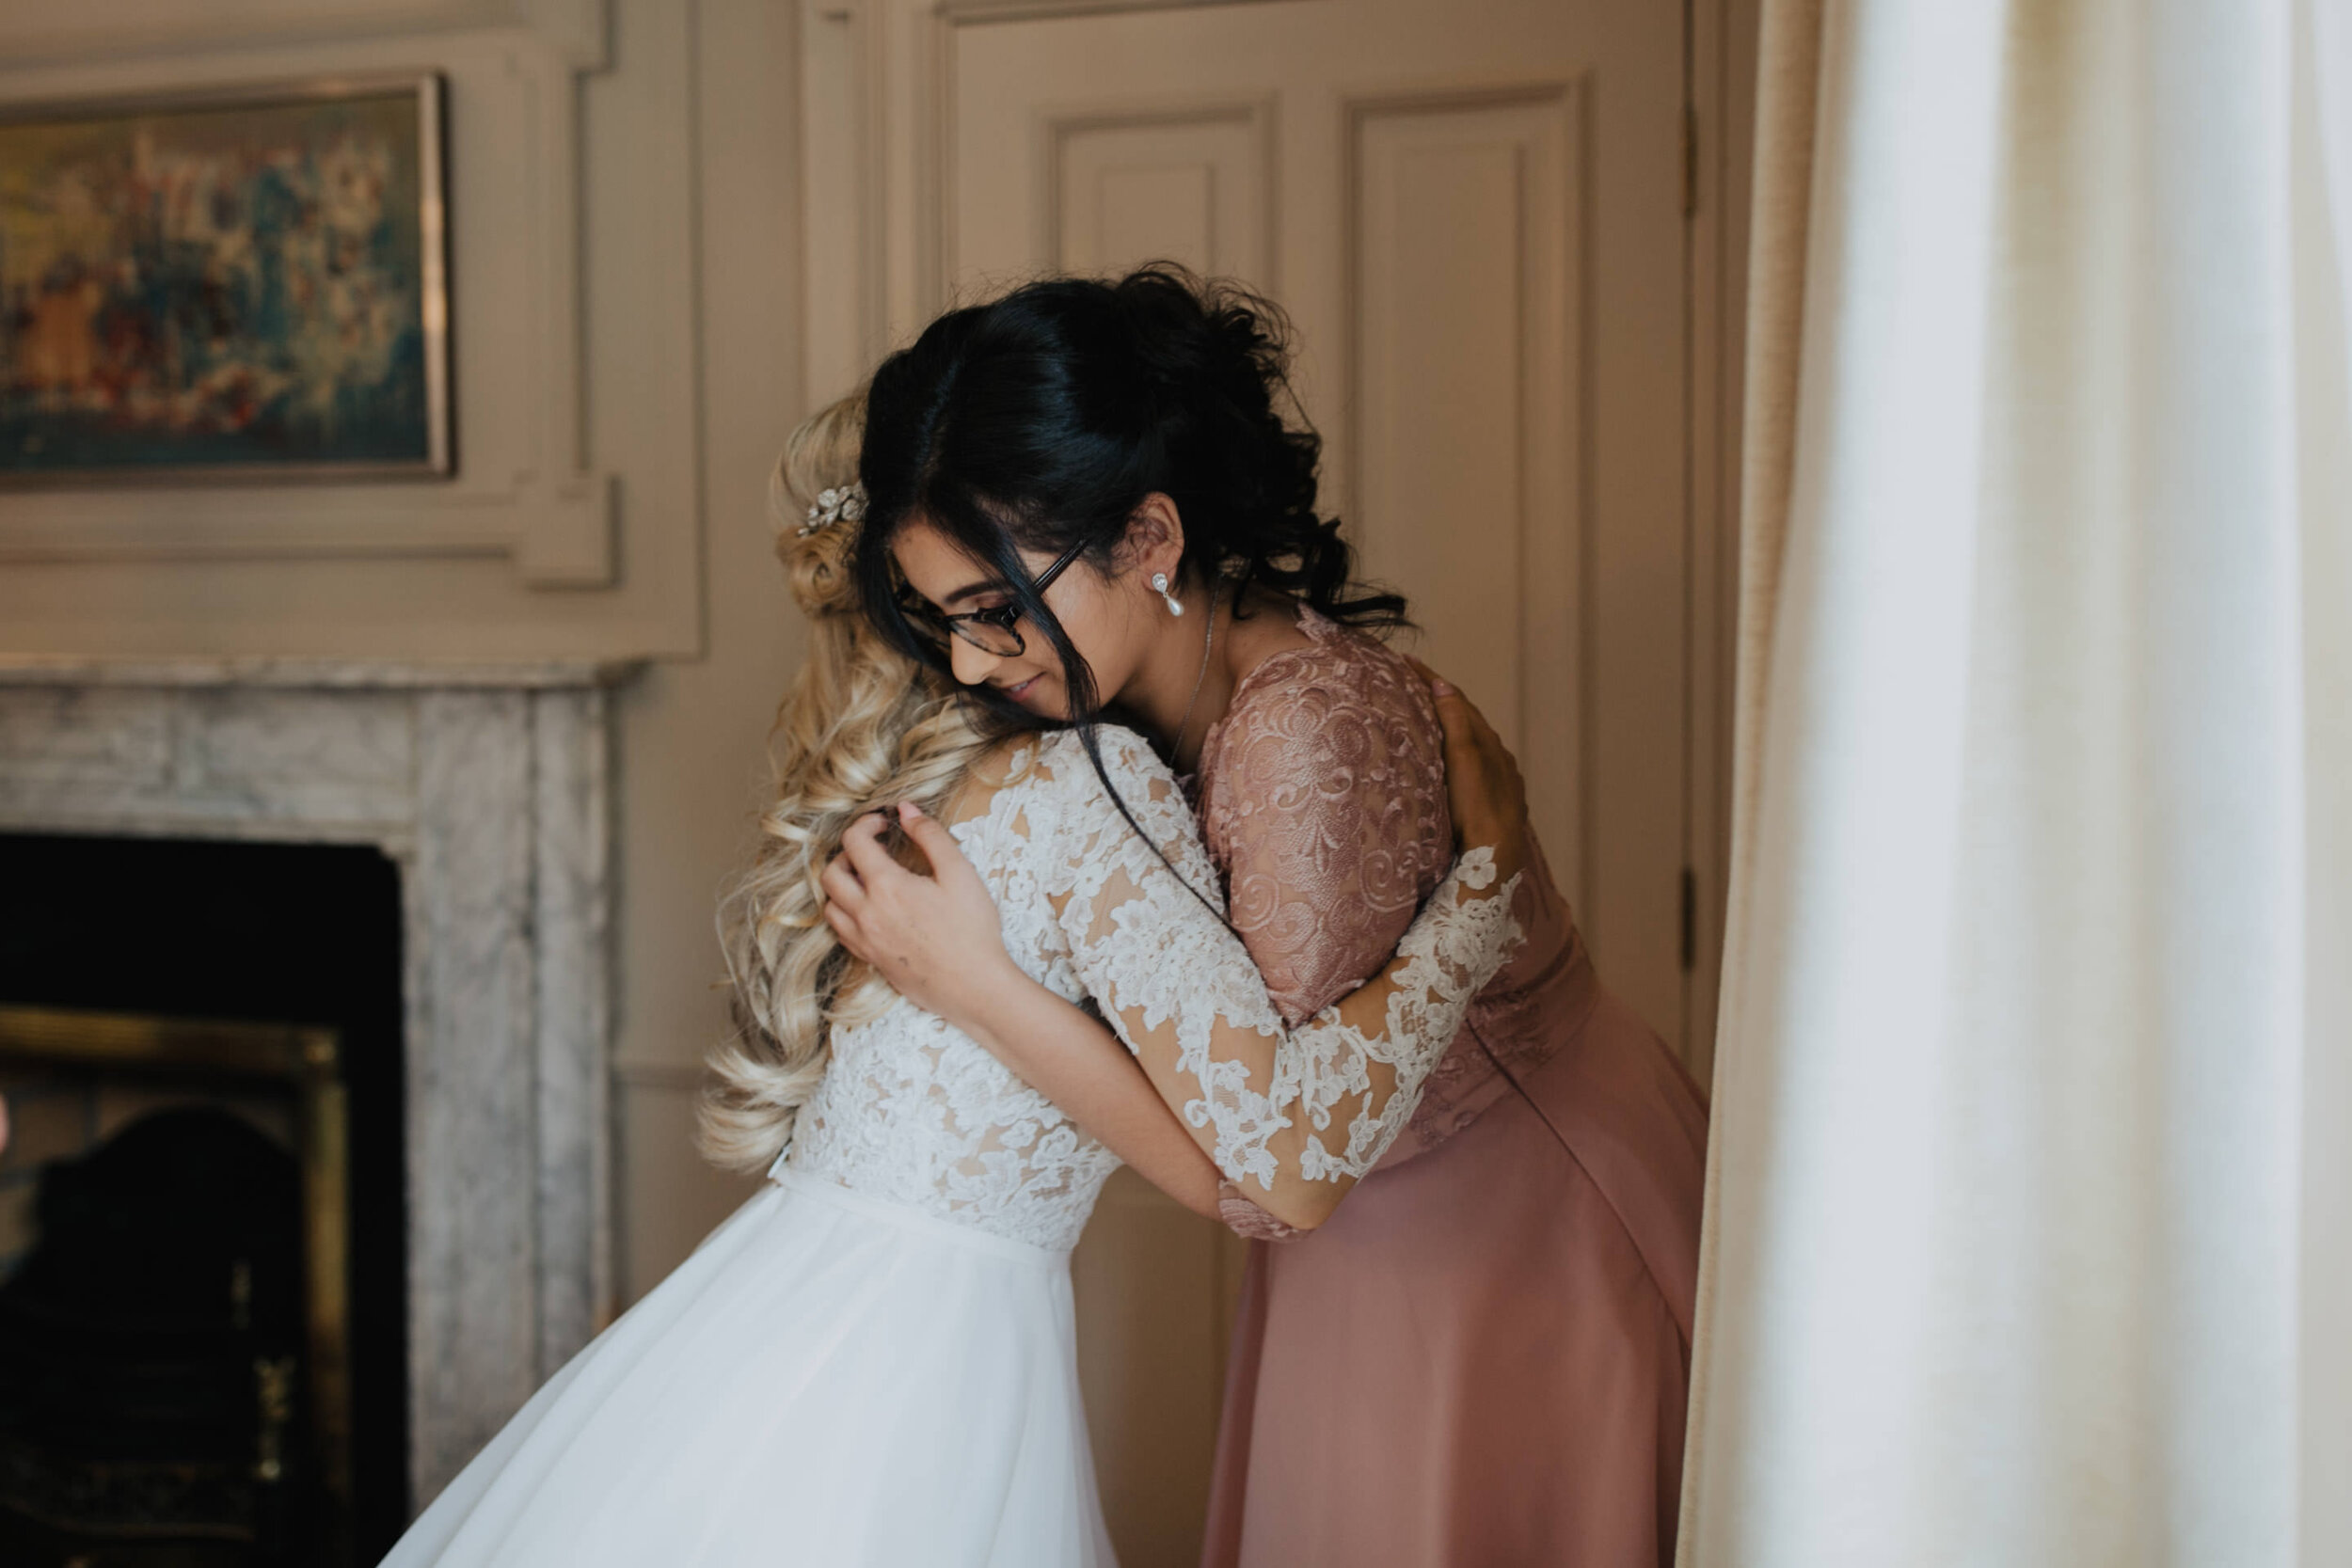 c&s_the_westbury_wedding_photographer_livia_figueiredo_6.jpg